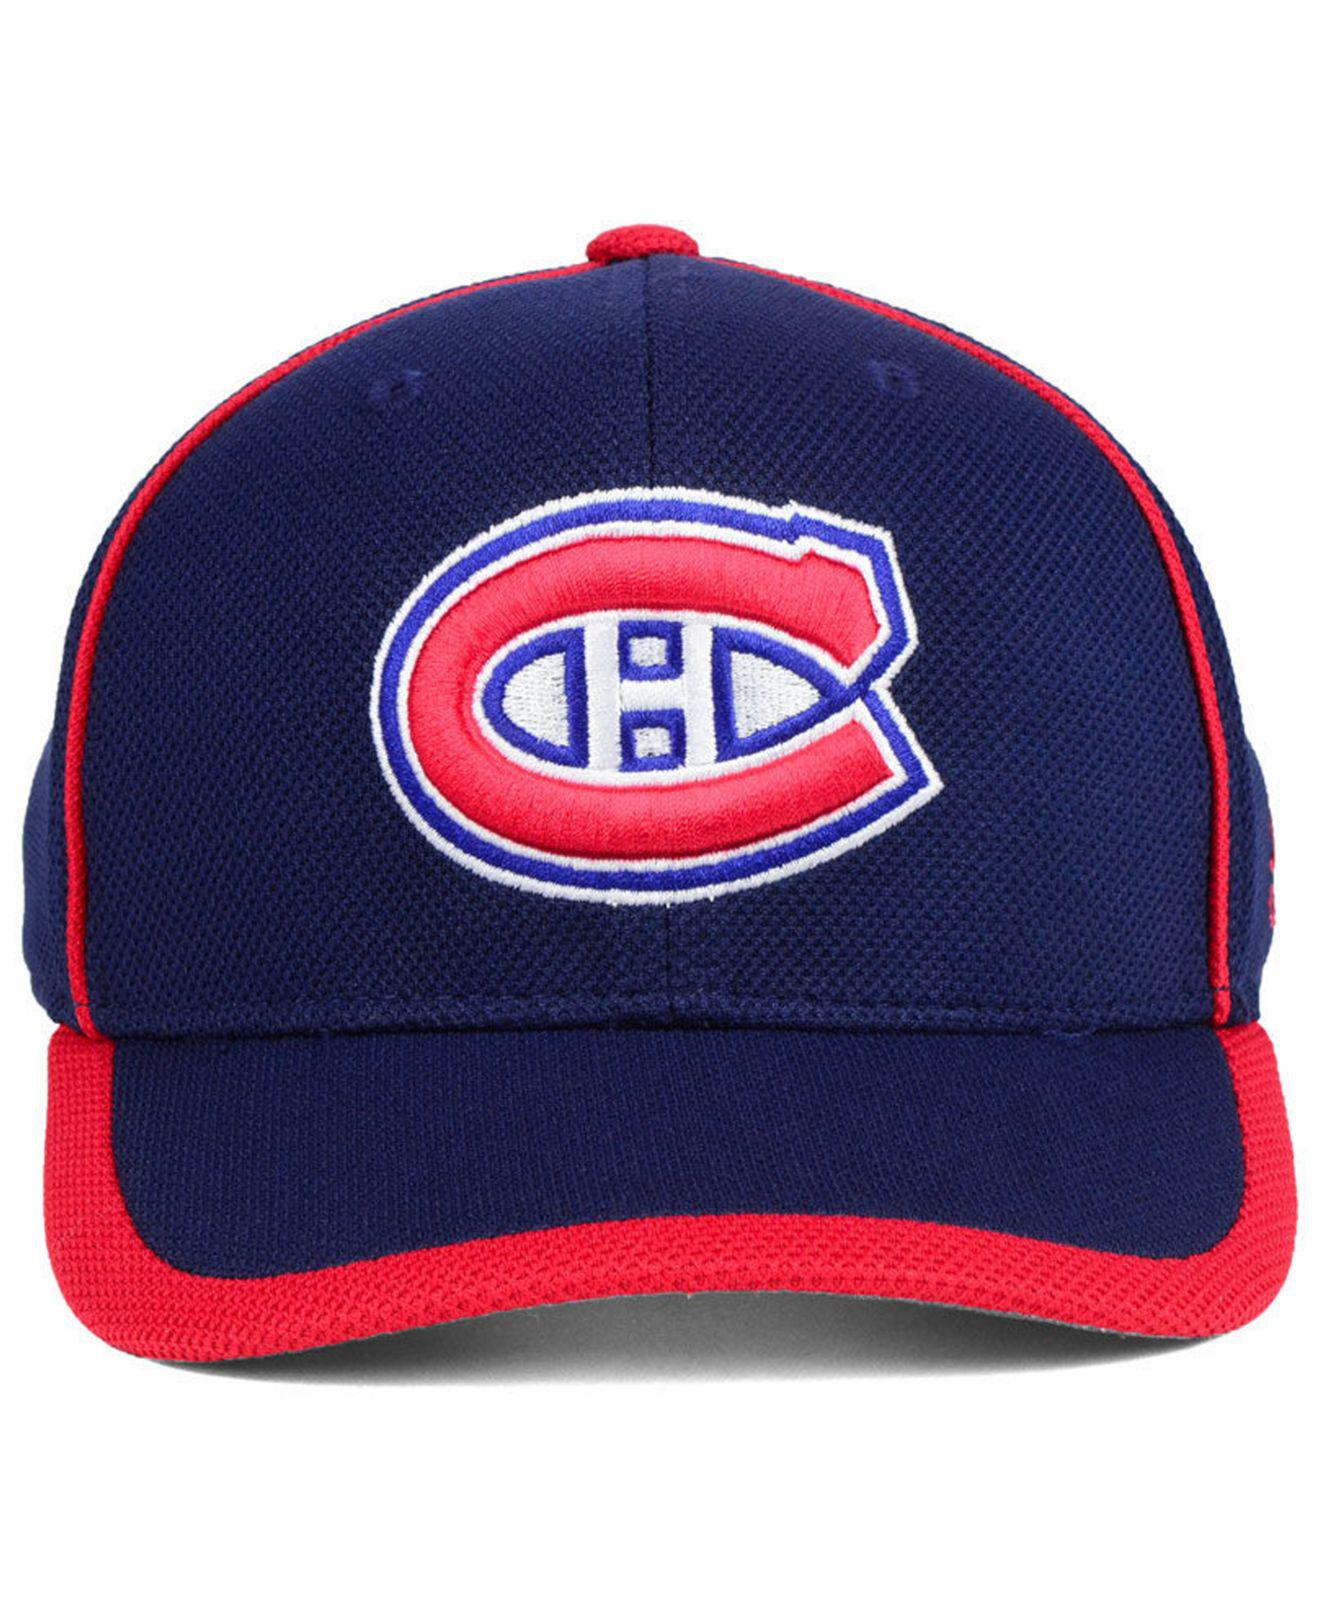 Lyst - Adidas Montreal Canadiens Clipper Adjustable Cap in Blue for Men f468866f9c82